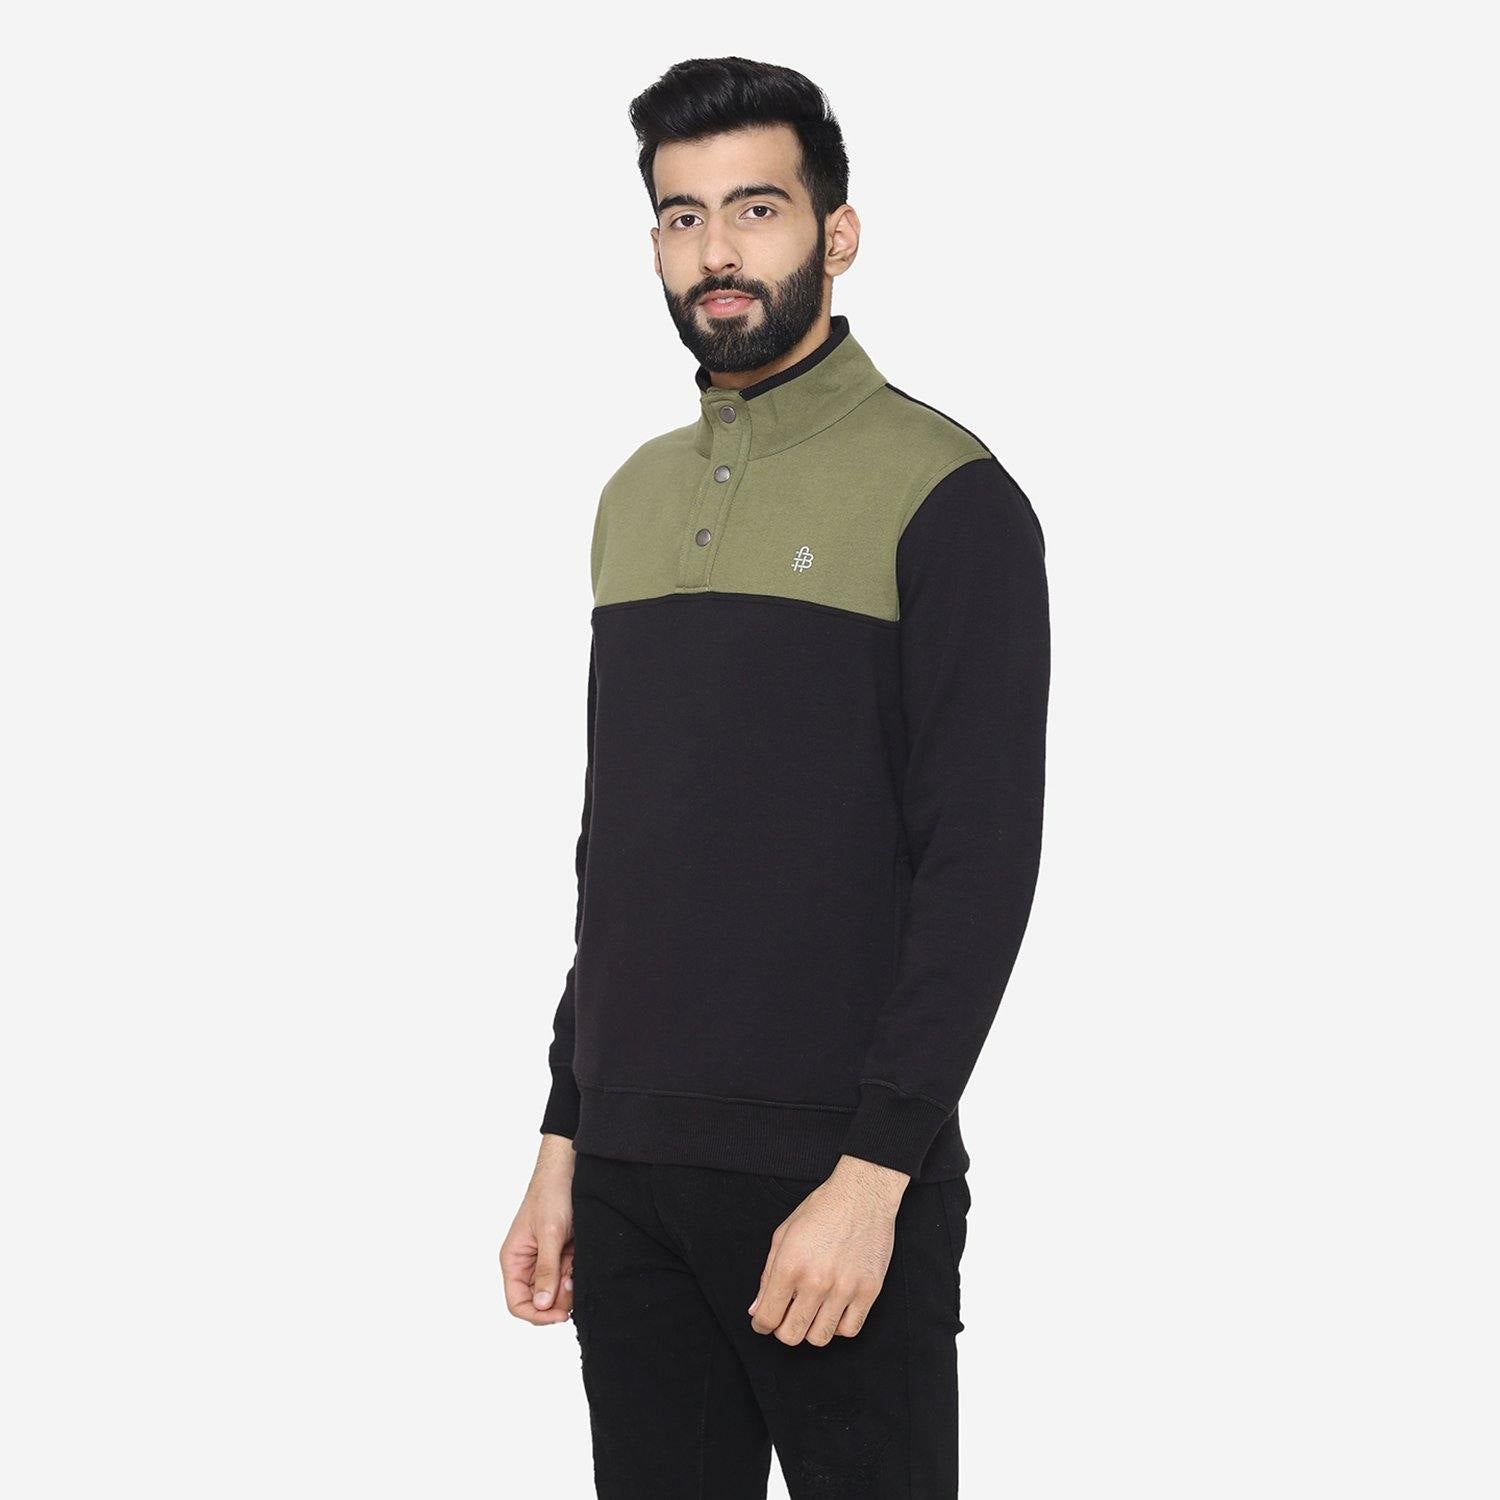 Men's winter Bi-Color  sweatshirt - Black / Olive